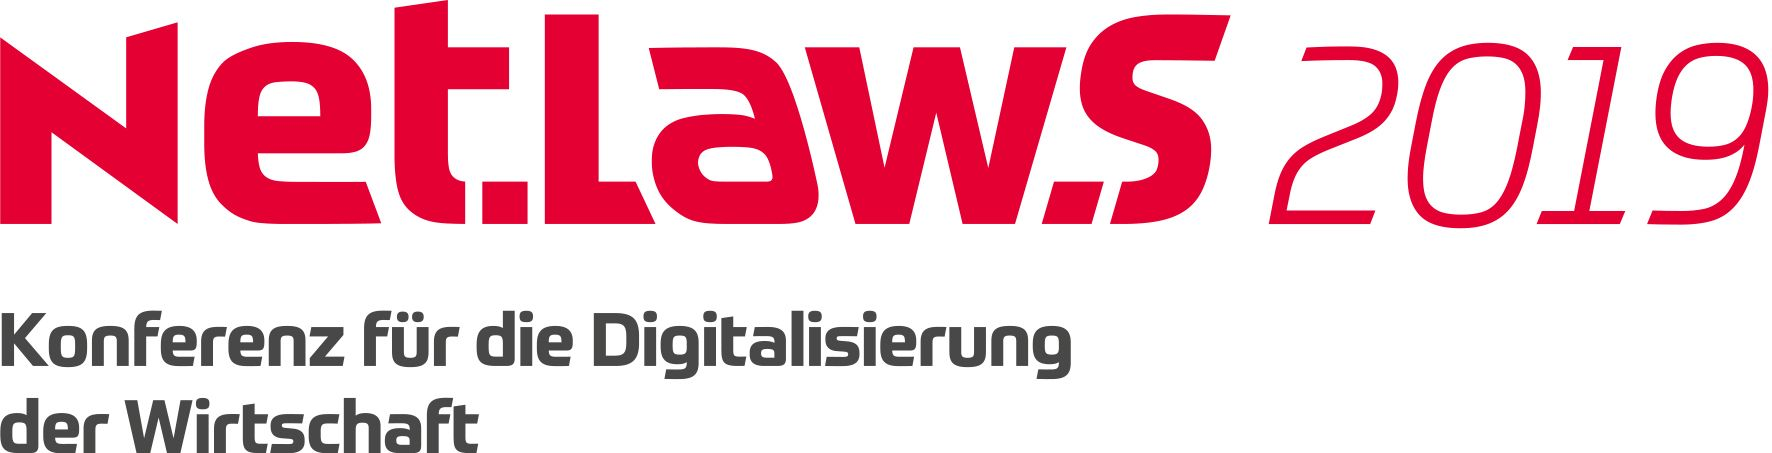 NetLaws-2019-Logo-mit-Untertitel-RGB-300dpi.jpg